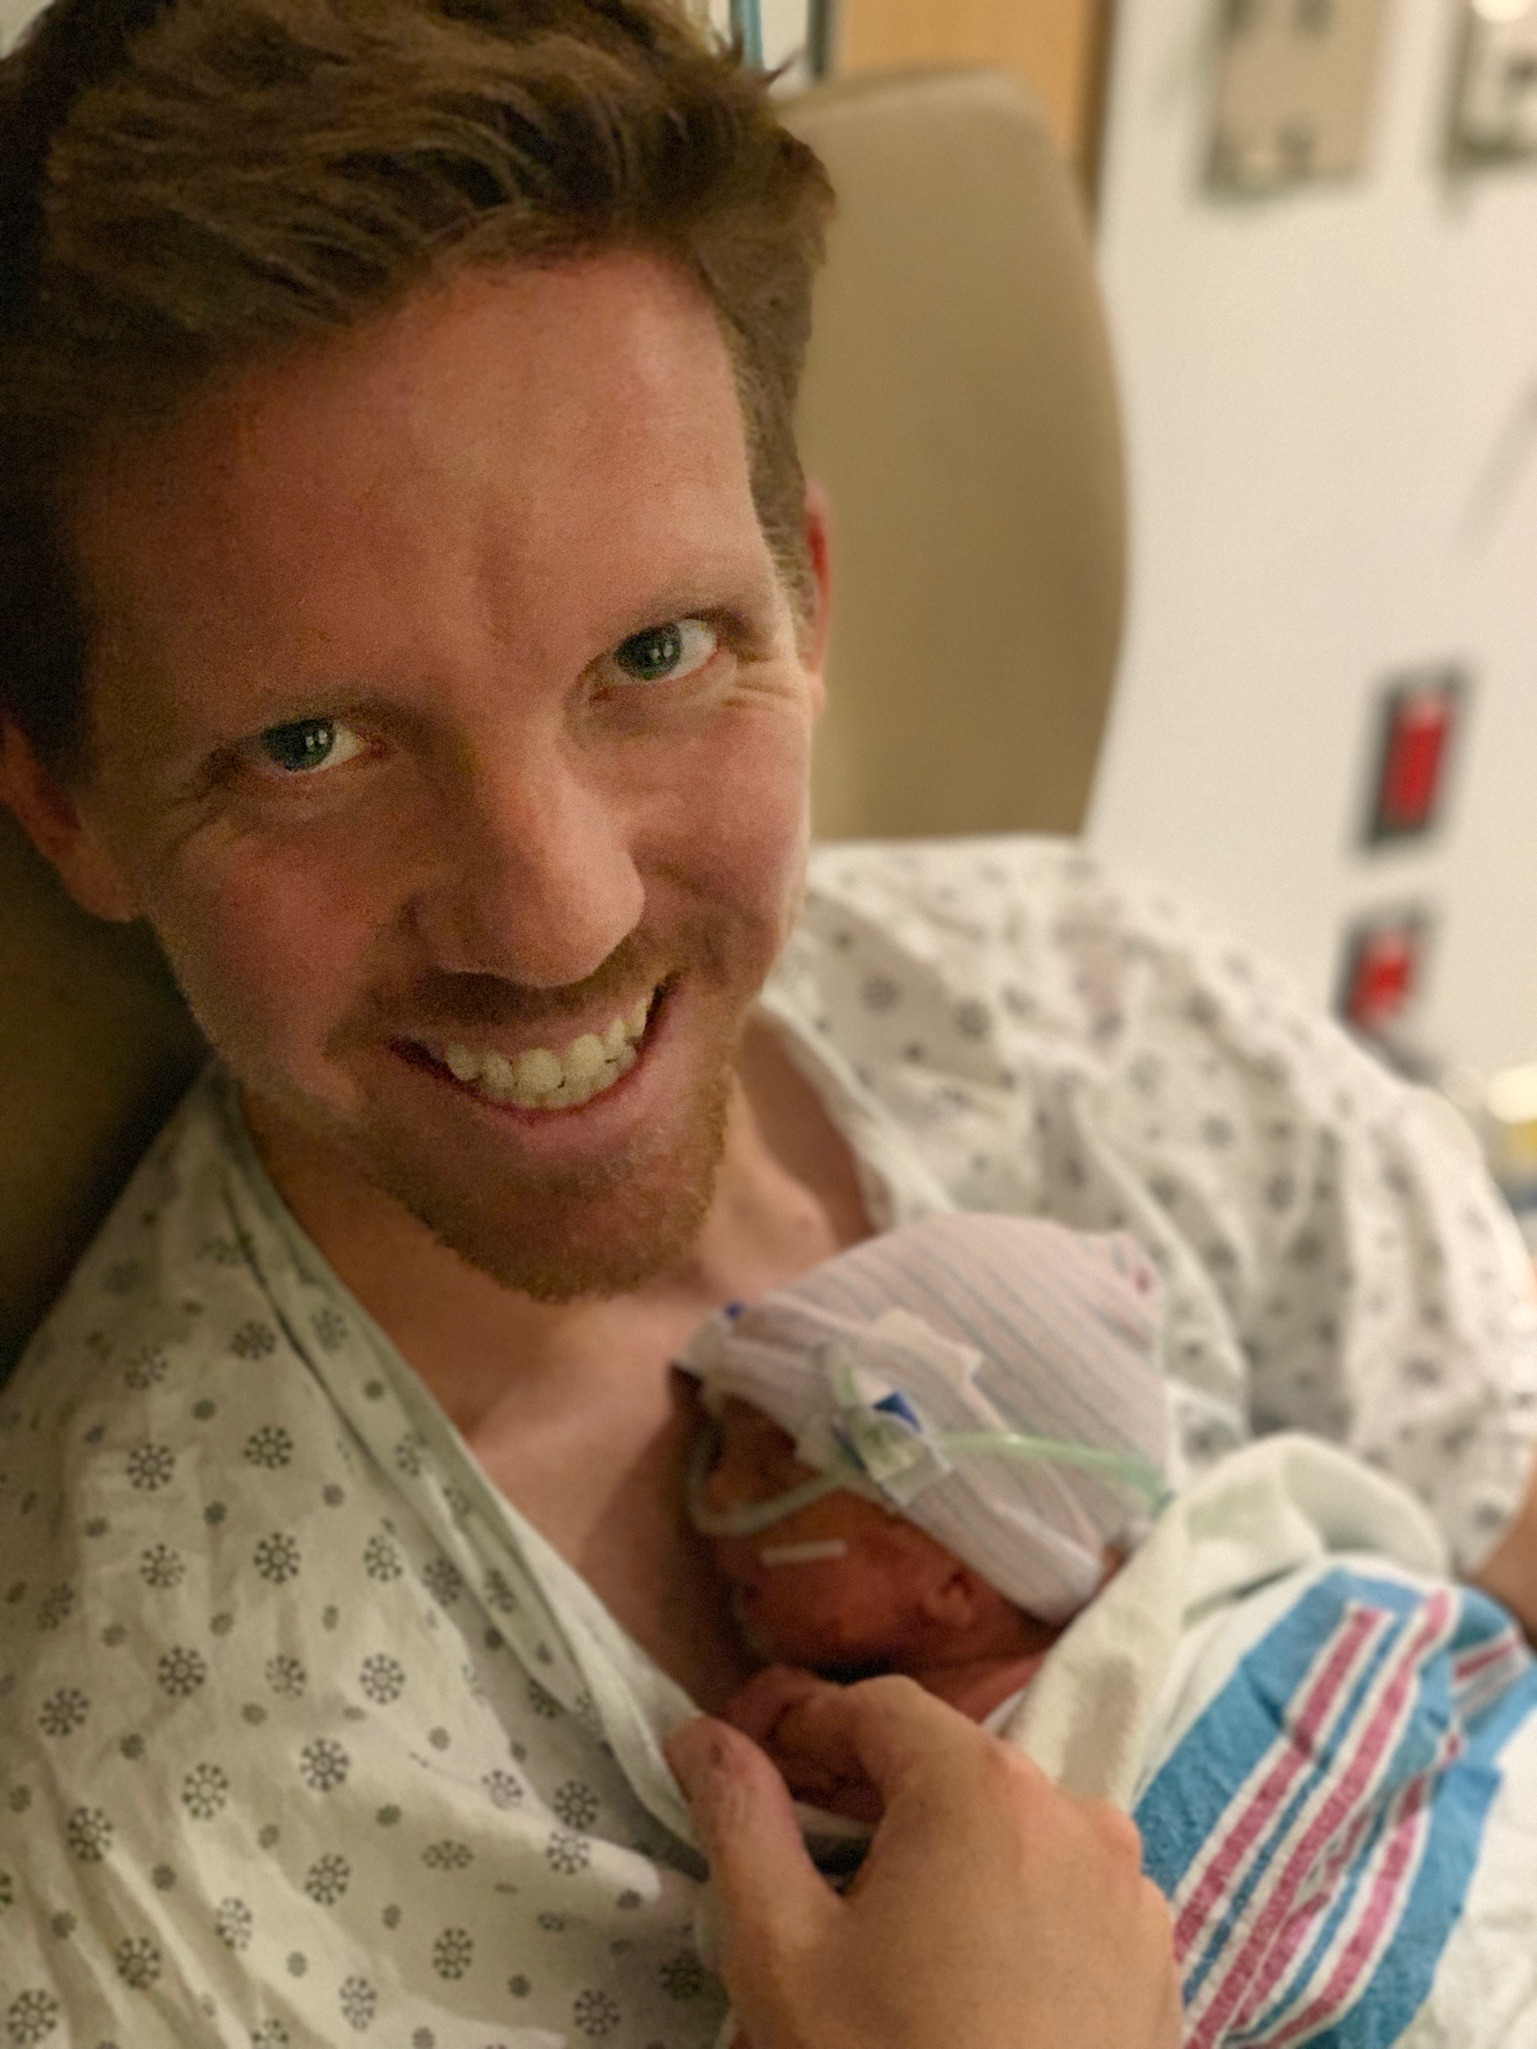 Daddy getting to hold his littlest love.